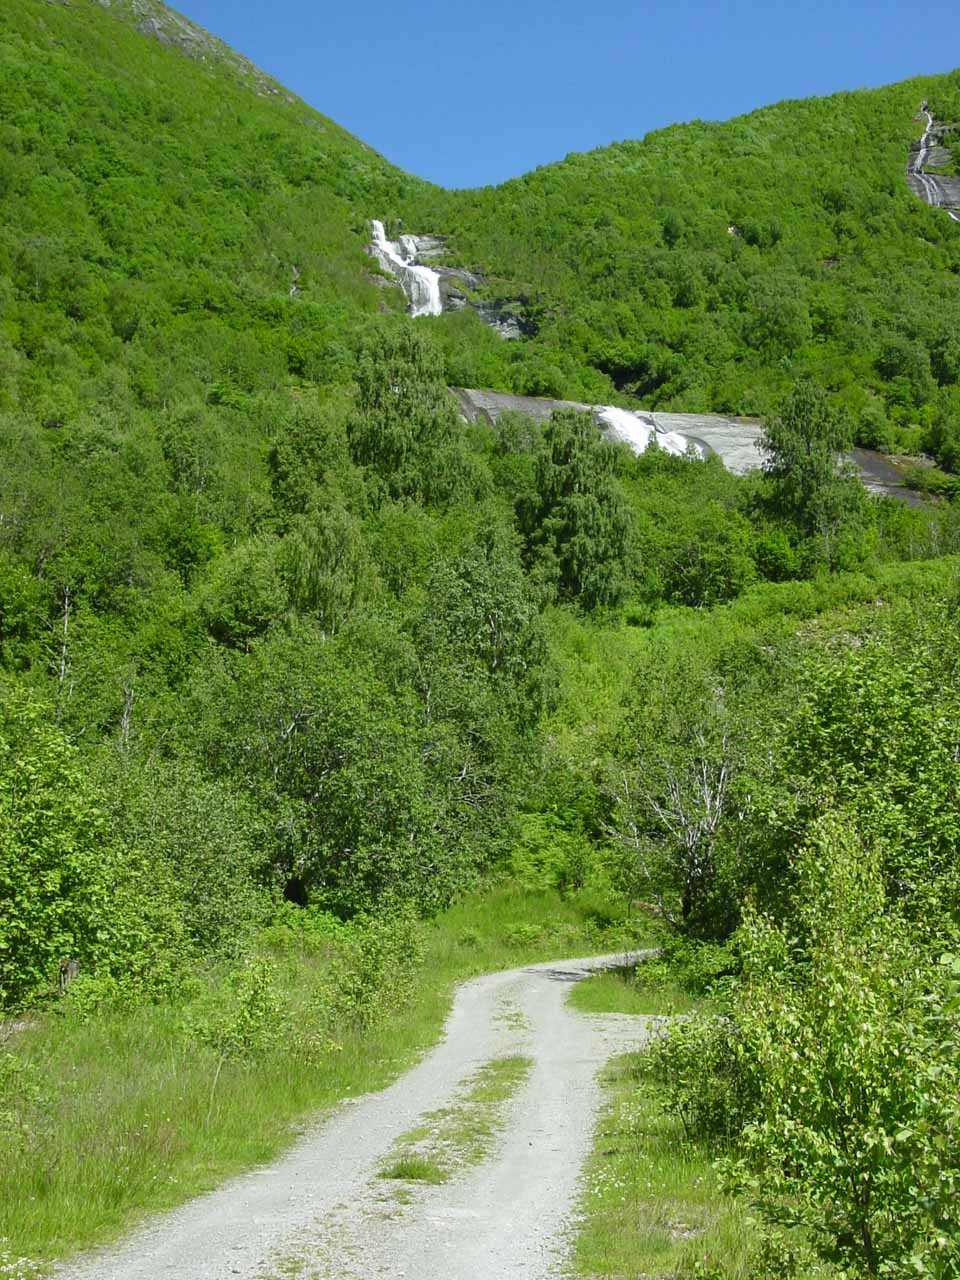 About to go up the very narrow and steep road into Bødalen